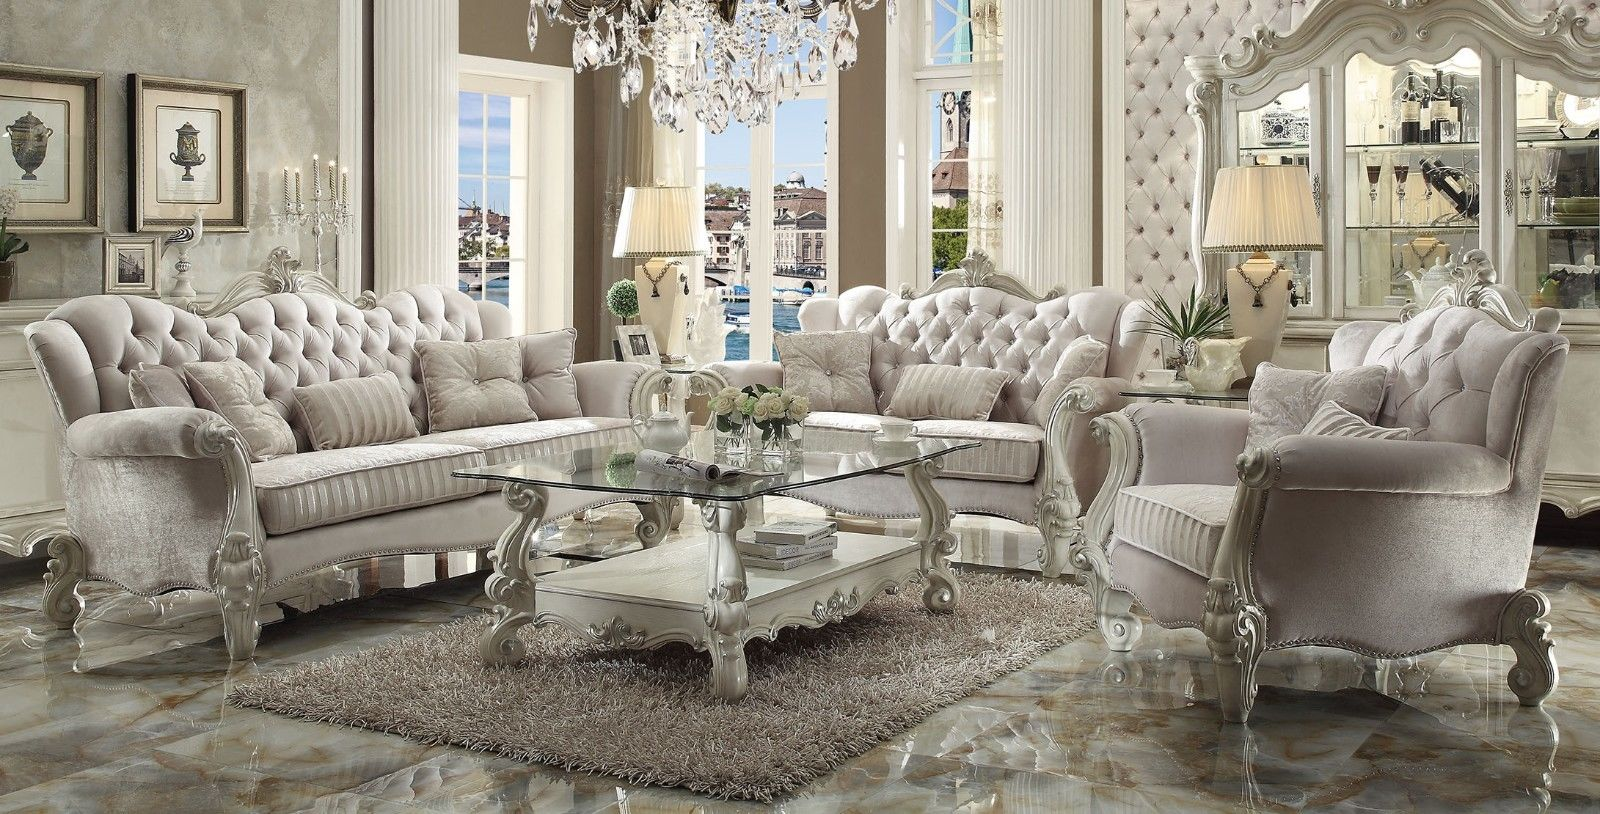 Versailles traditional ivory velvet formal living room set - White wooden living room furniture ...